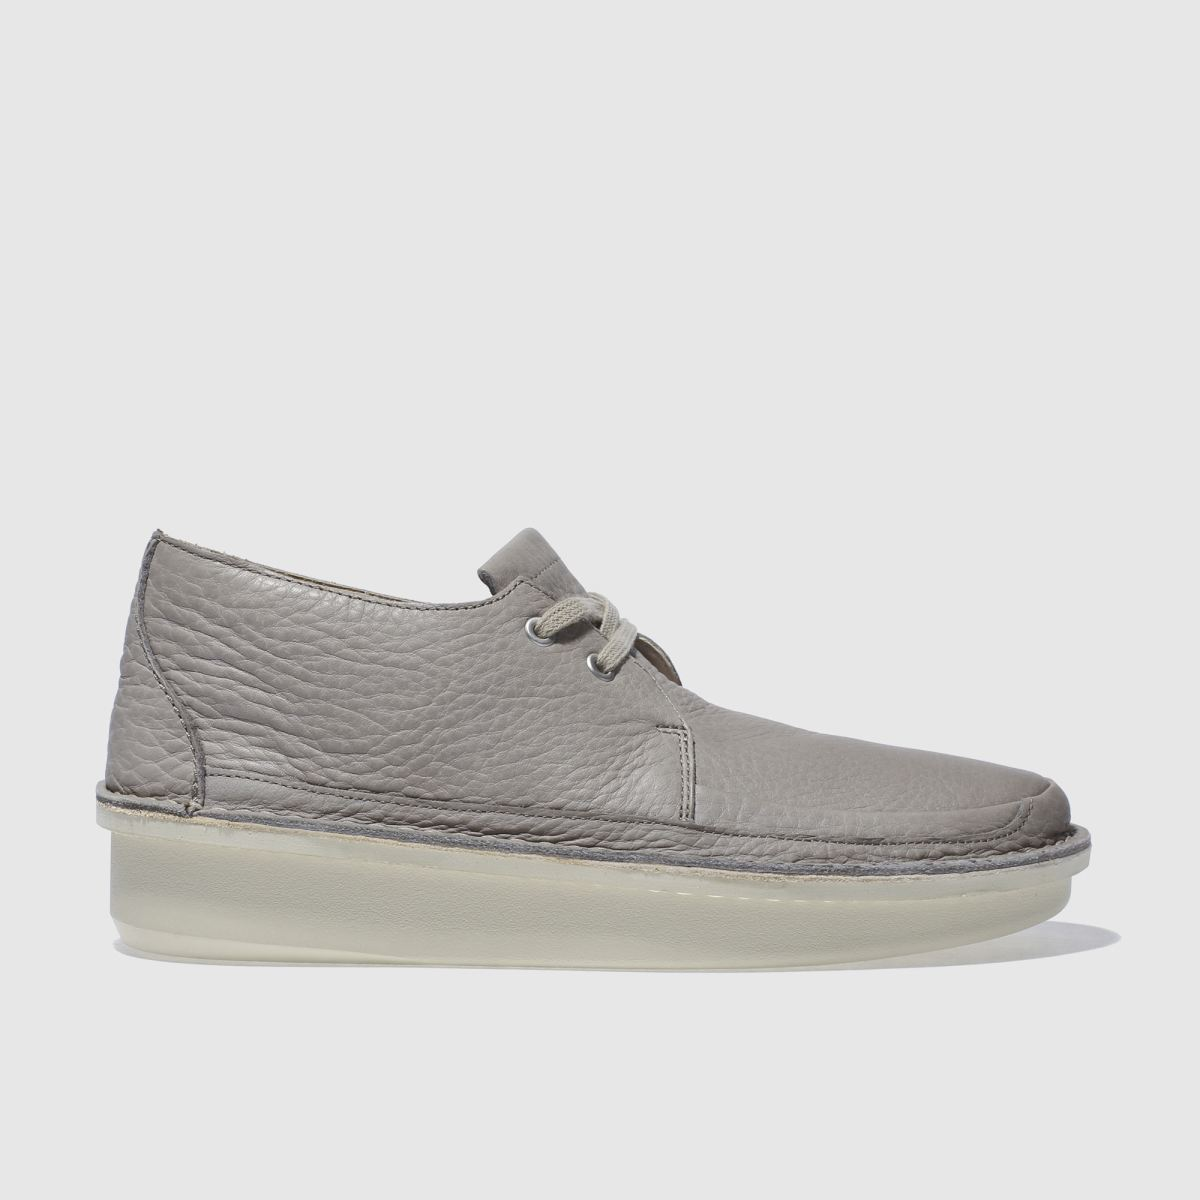 clarks originals stone oswyn mid shoes